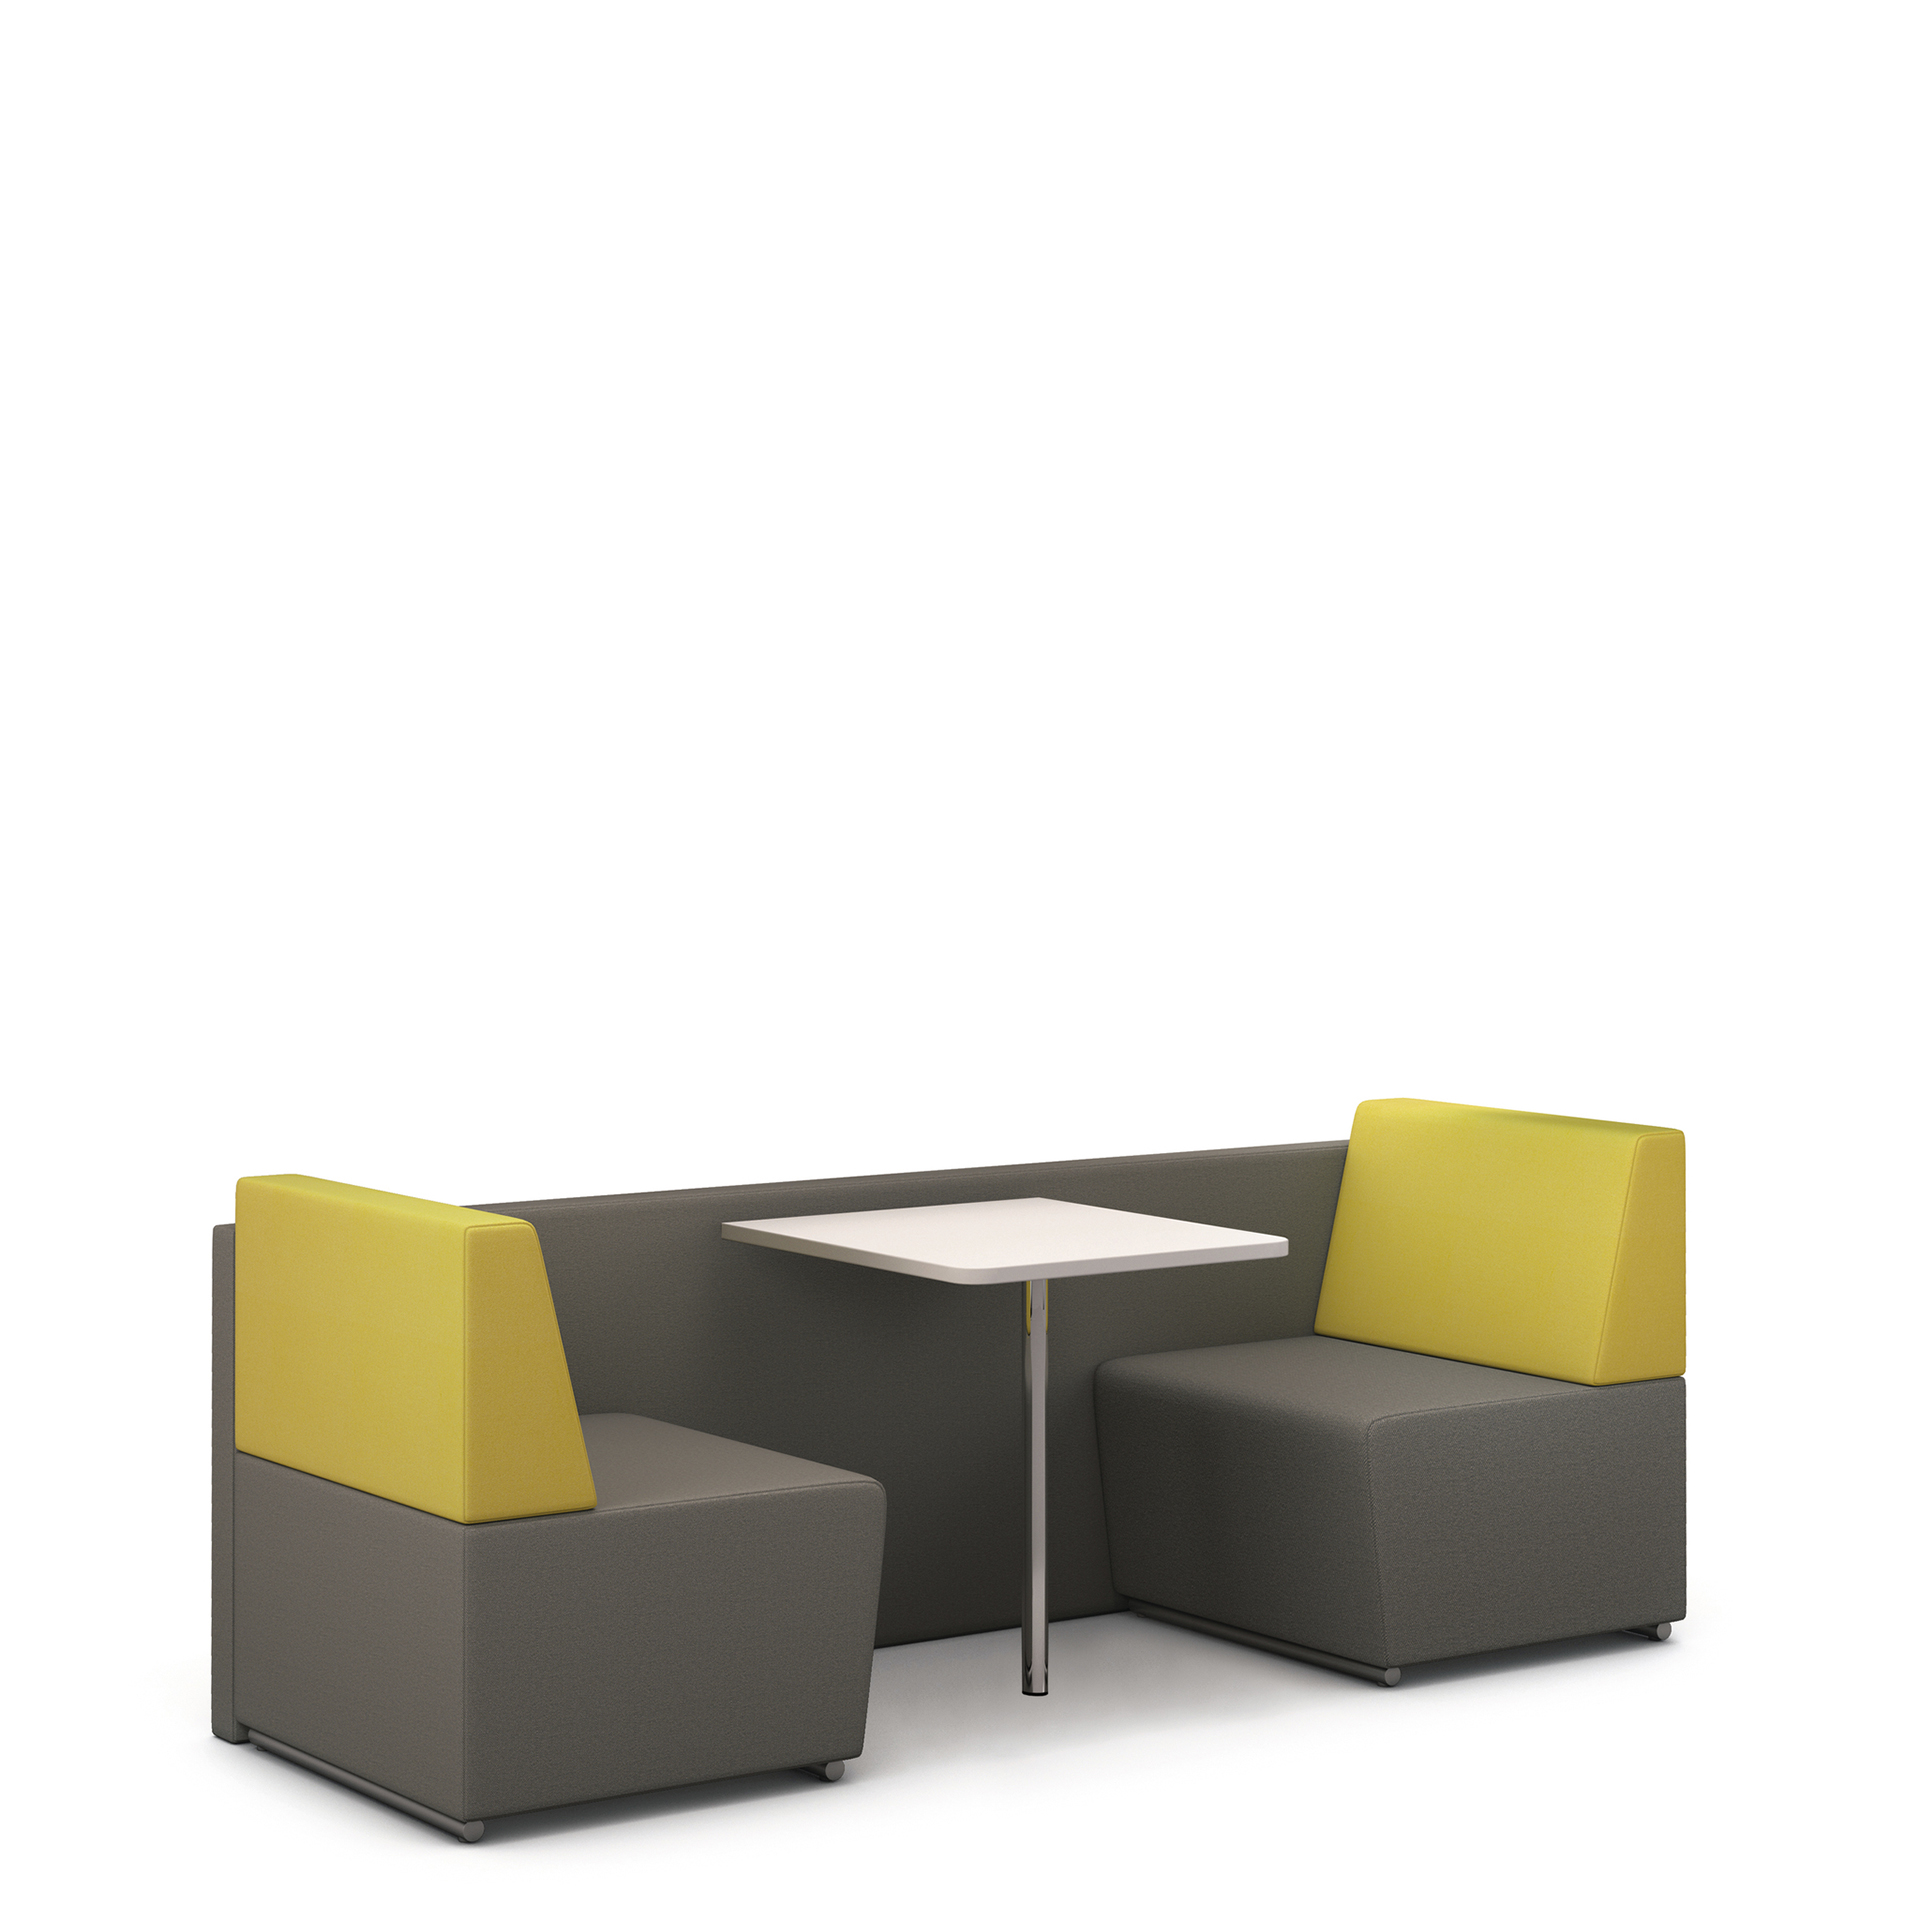 Breakout diner seating 2 seat